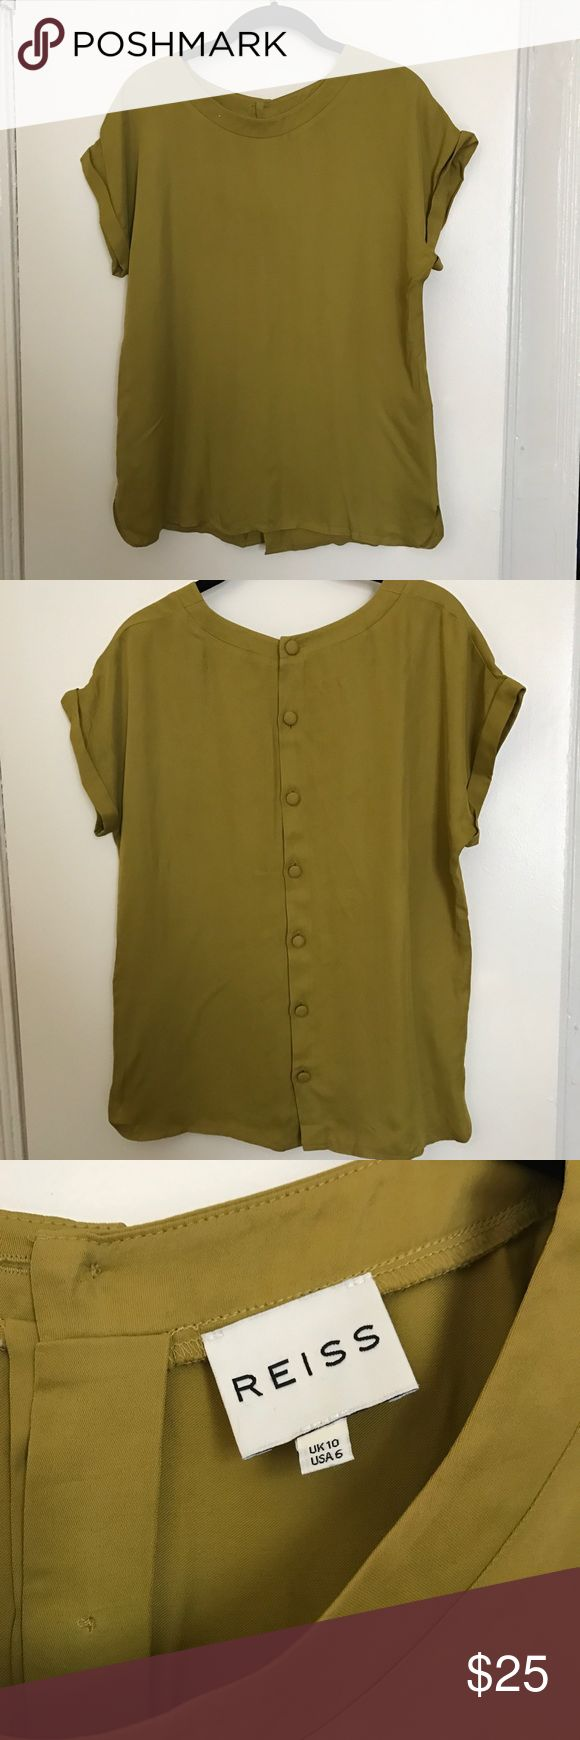 Reiss Silk Shirt Chartreuse silk shirt from Reiss with button detail down back. Reiss Tops Blouses